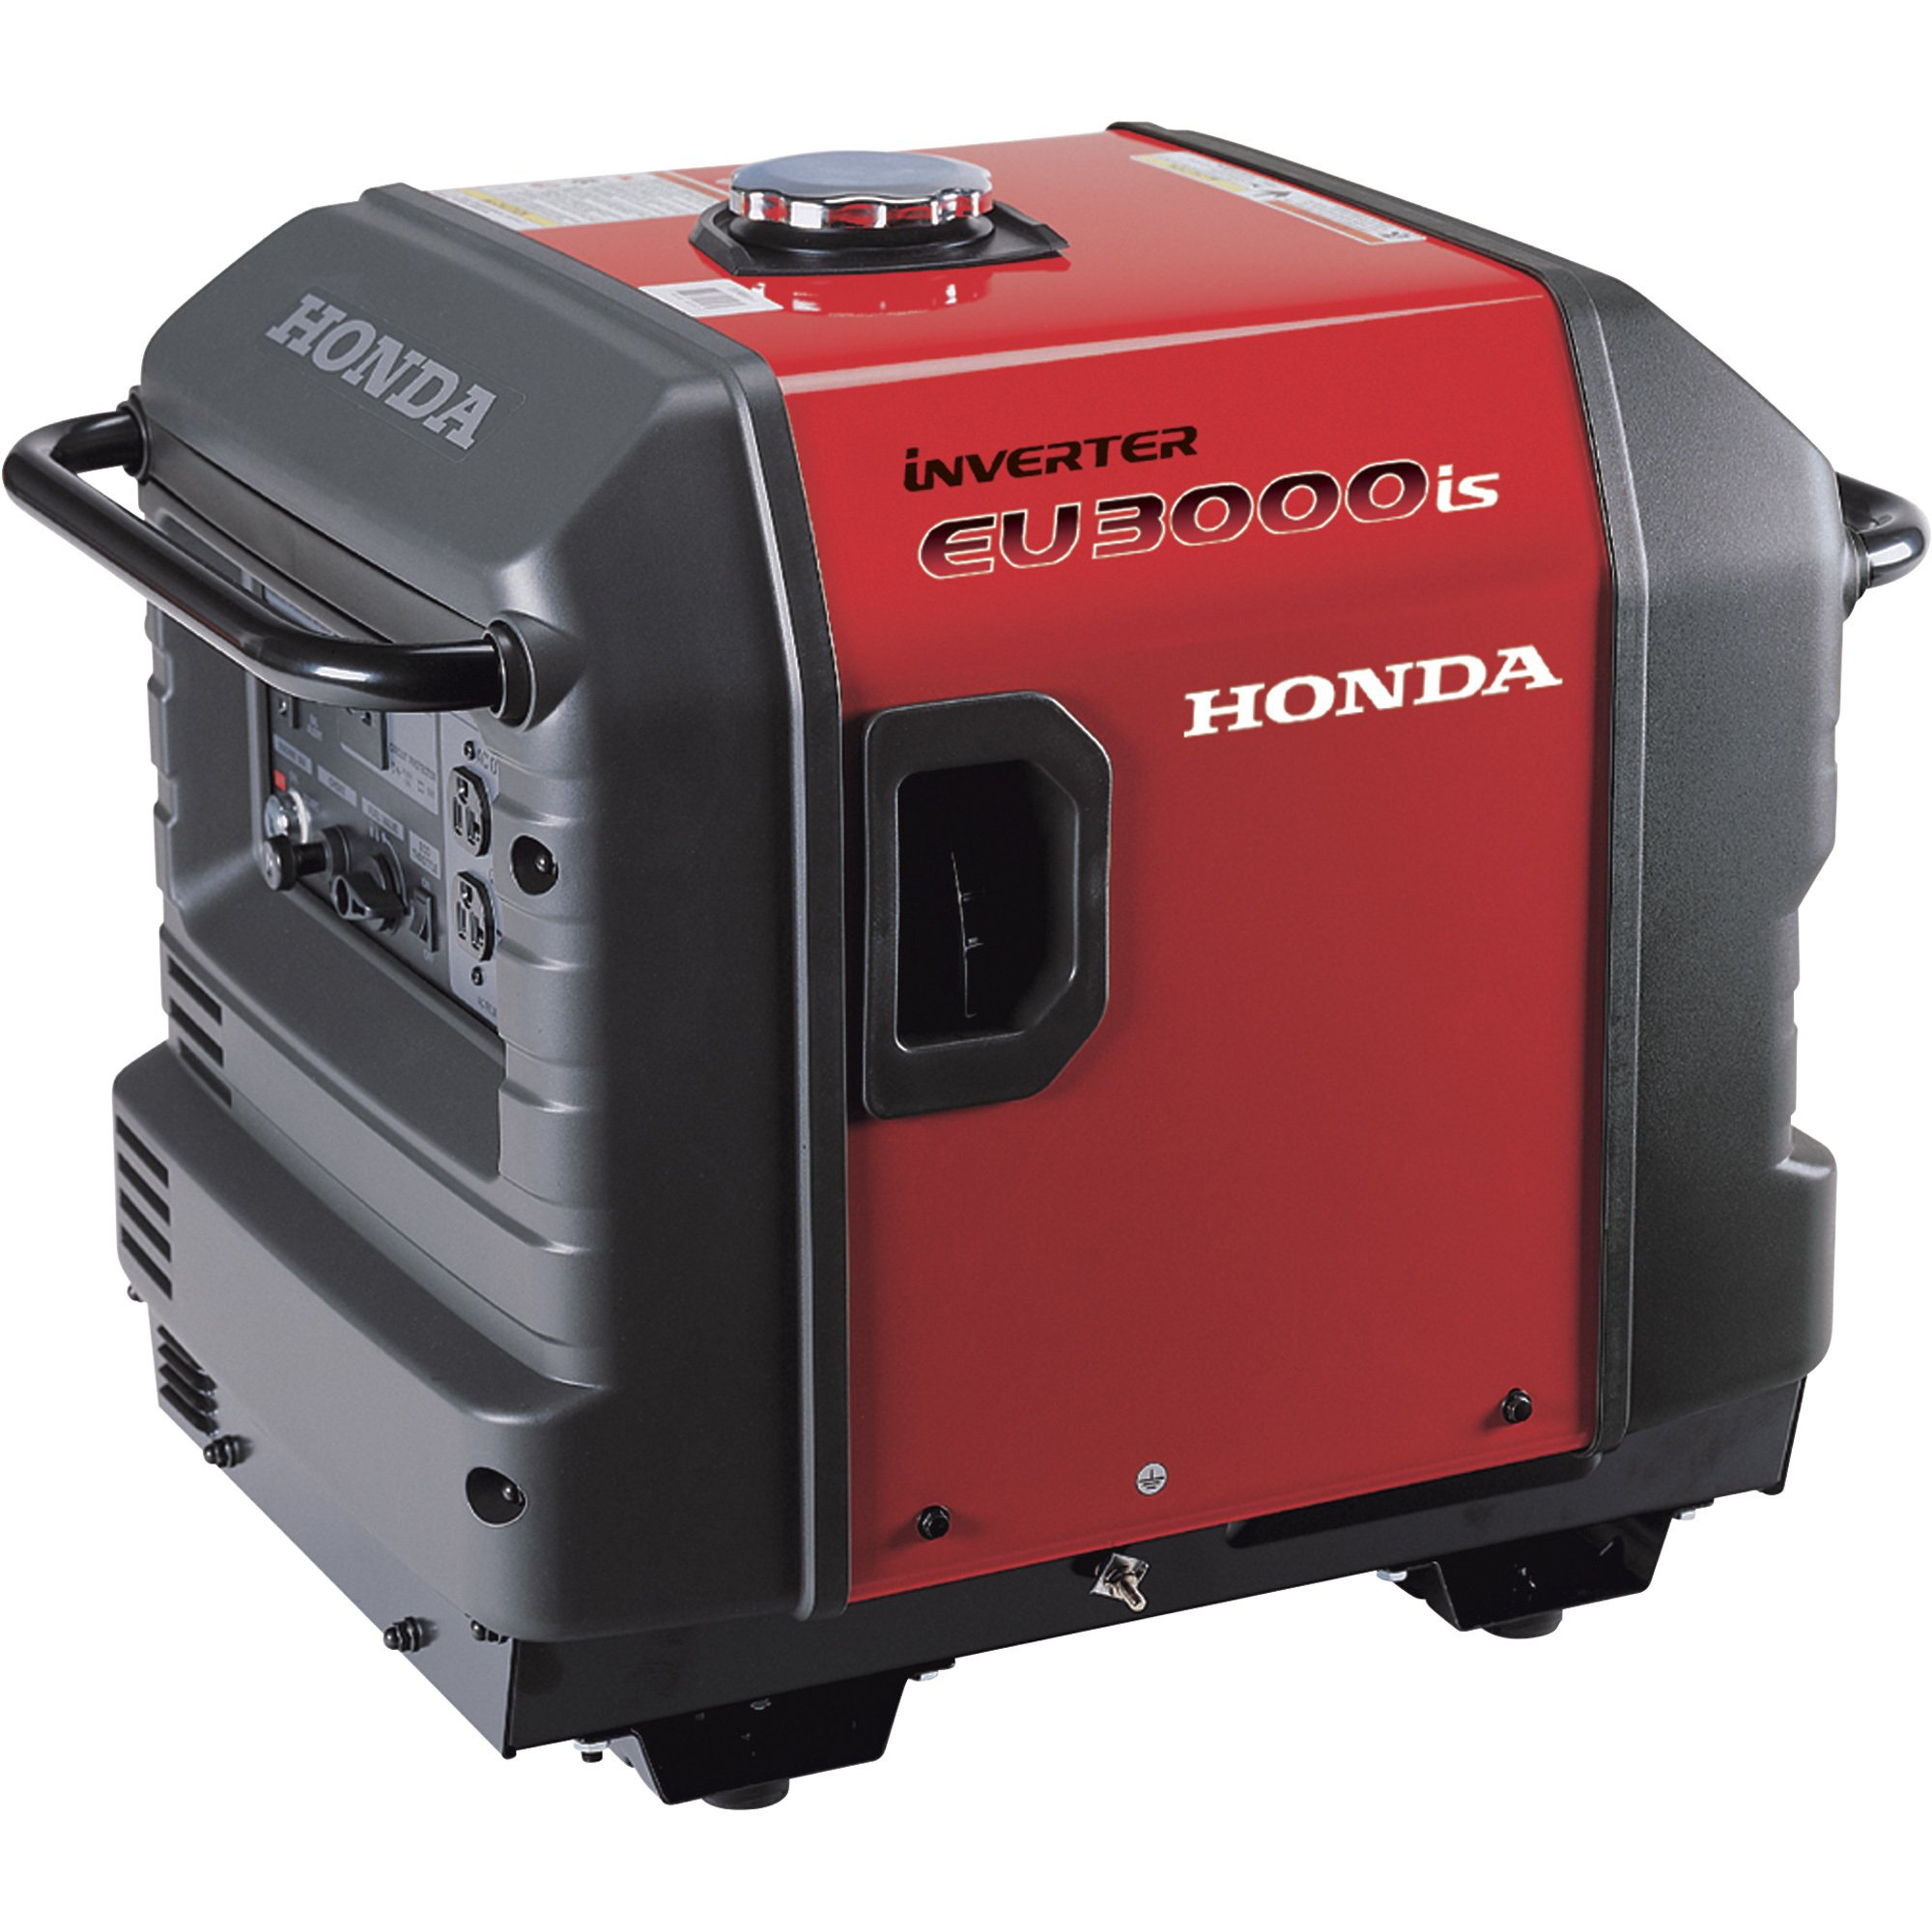 3000 Watt Inverter/Generator $50/day $150/week